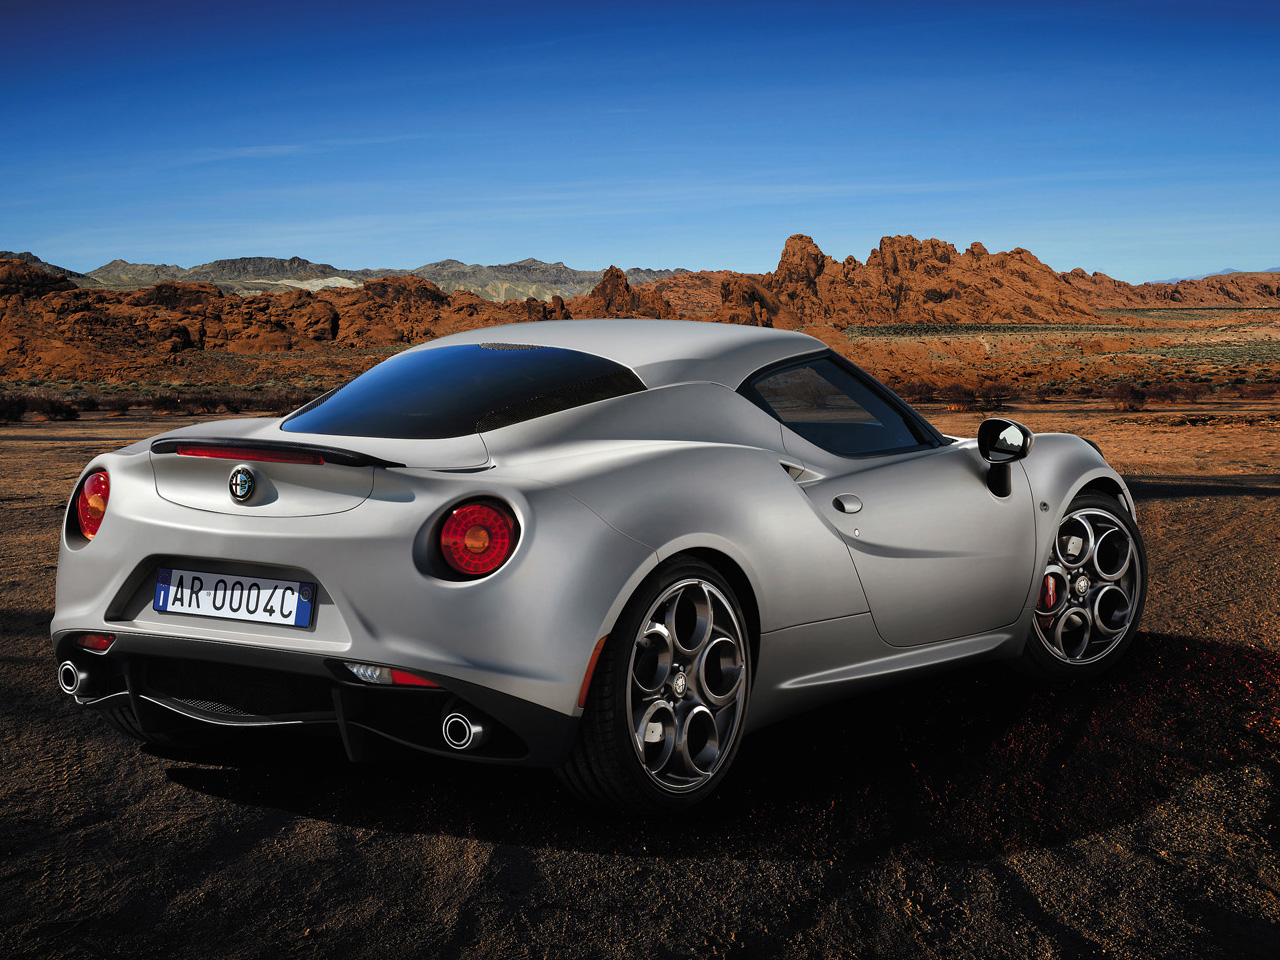 2013 alfa romeo brera 4c views car. Black Bedroom Furniture Sets. Home Design Ideas